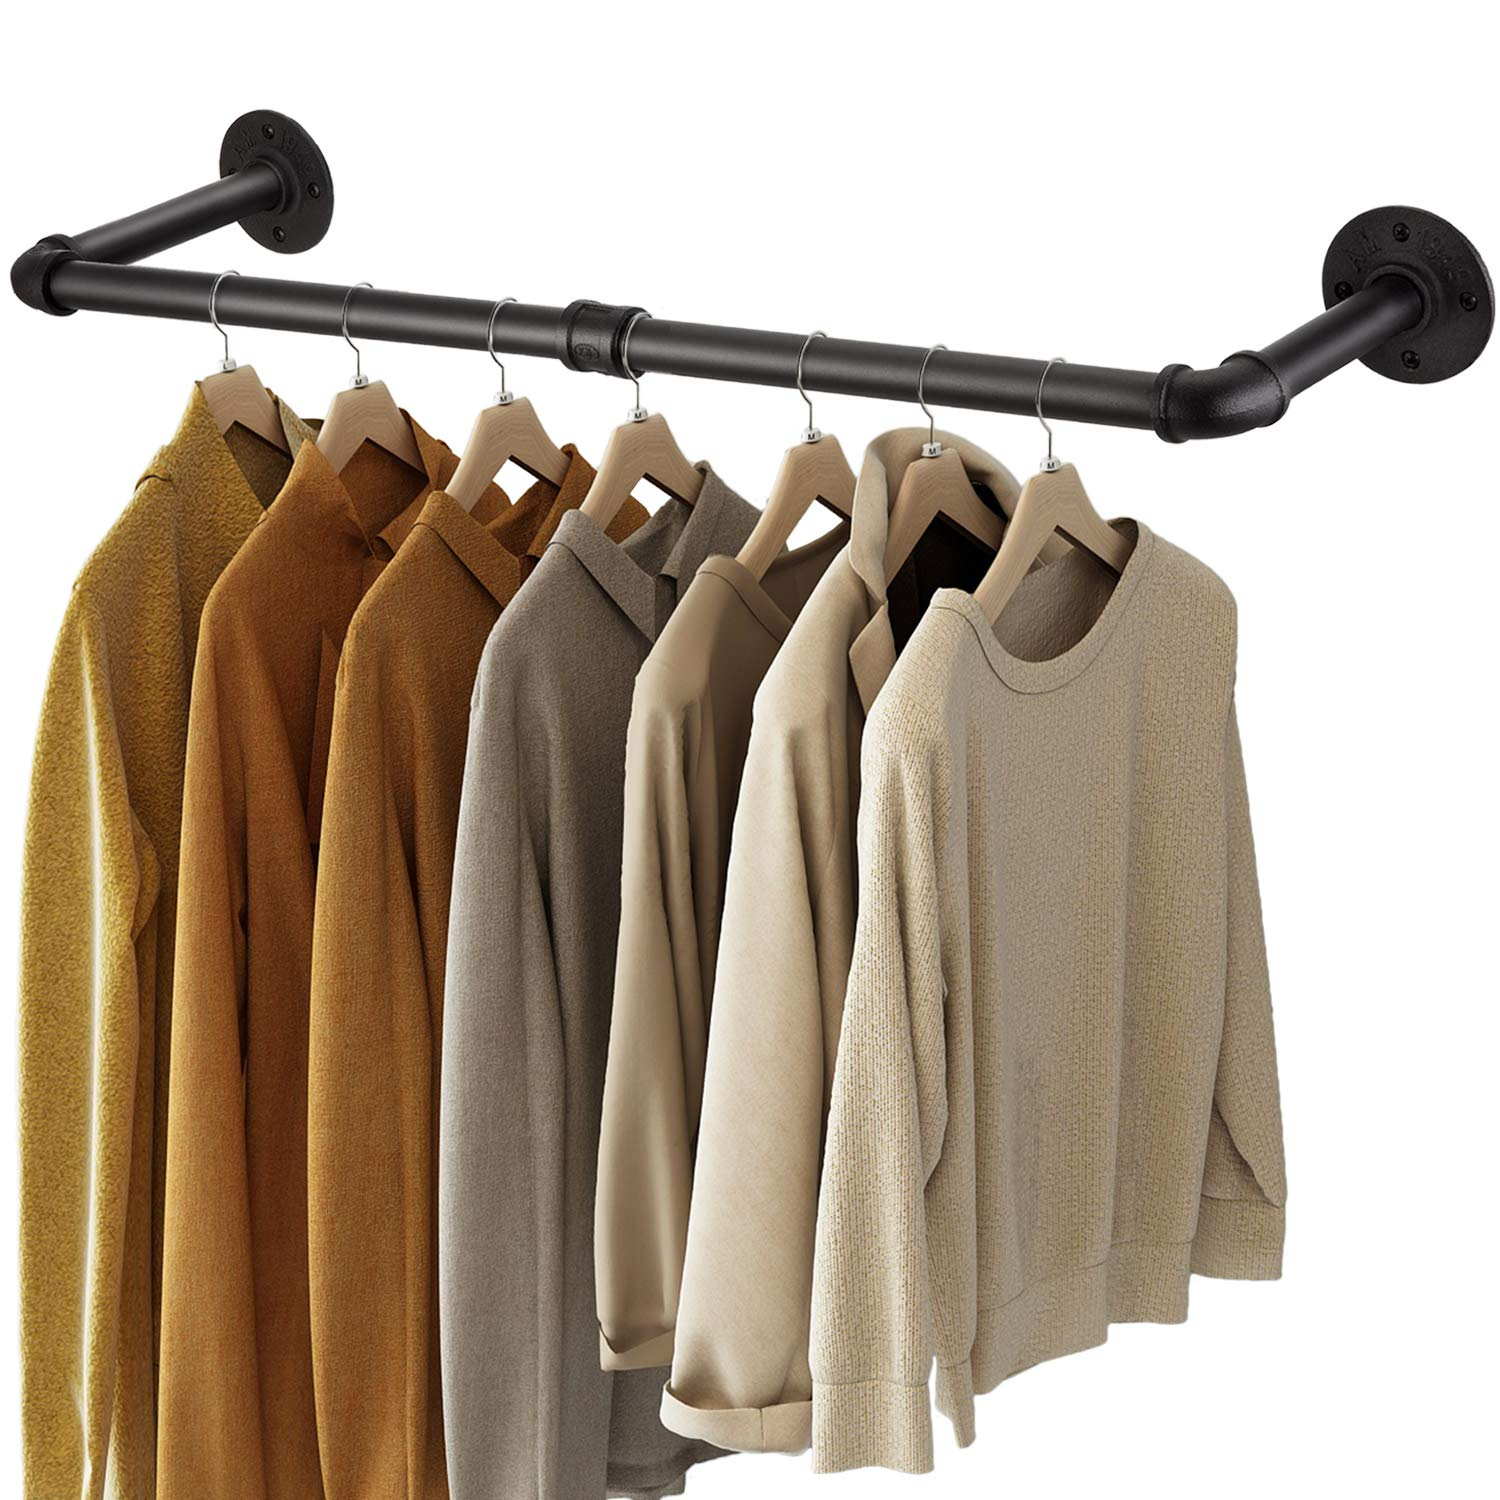 Greenstell Clothes Rack, 36in Industrial Pipe Wall Mounted Garment Rack, Space-Saving Hanging Clothes Rack, Heavy Duty Detachable Garment Bar, Multi-Purpose Hanging Rod for Closet Storage 2 Base (1 Pack)